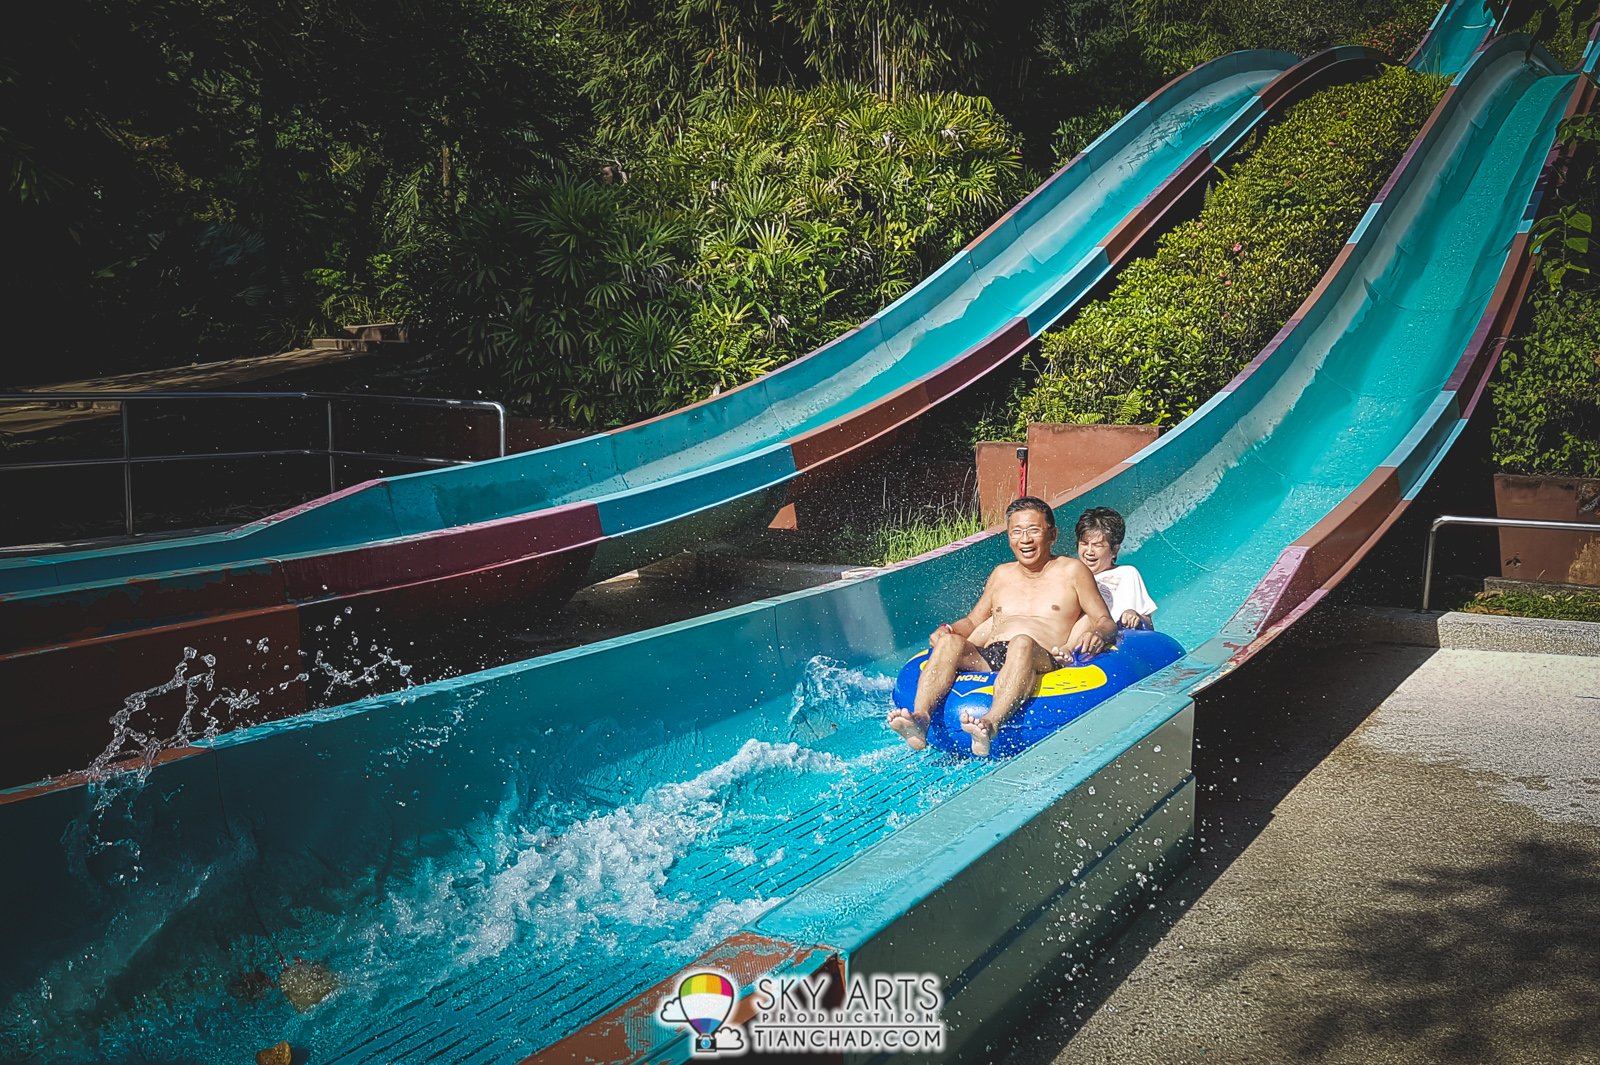 Lost world of tambun must try ride tctravel uncle aunty playe cliff racer together lost world of tambun gumiabroncs Choice Image